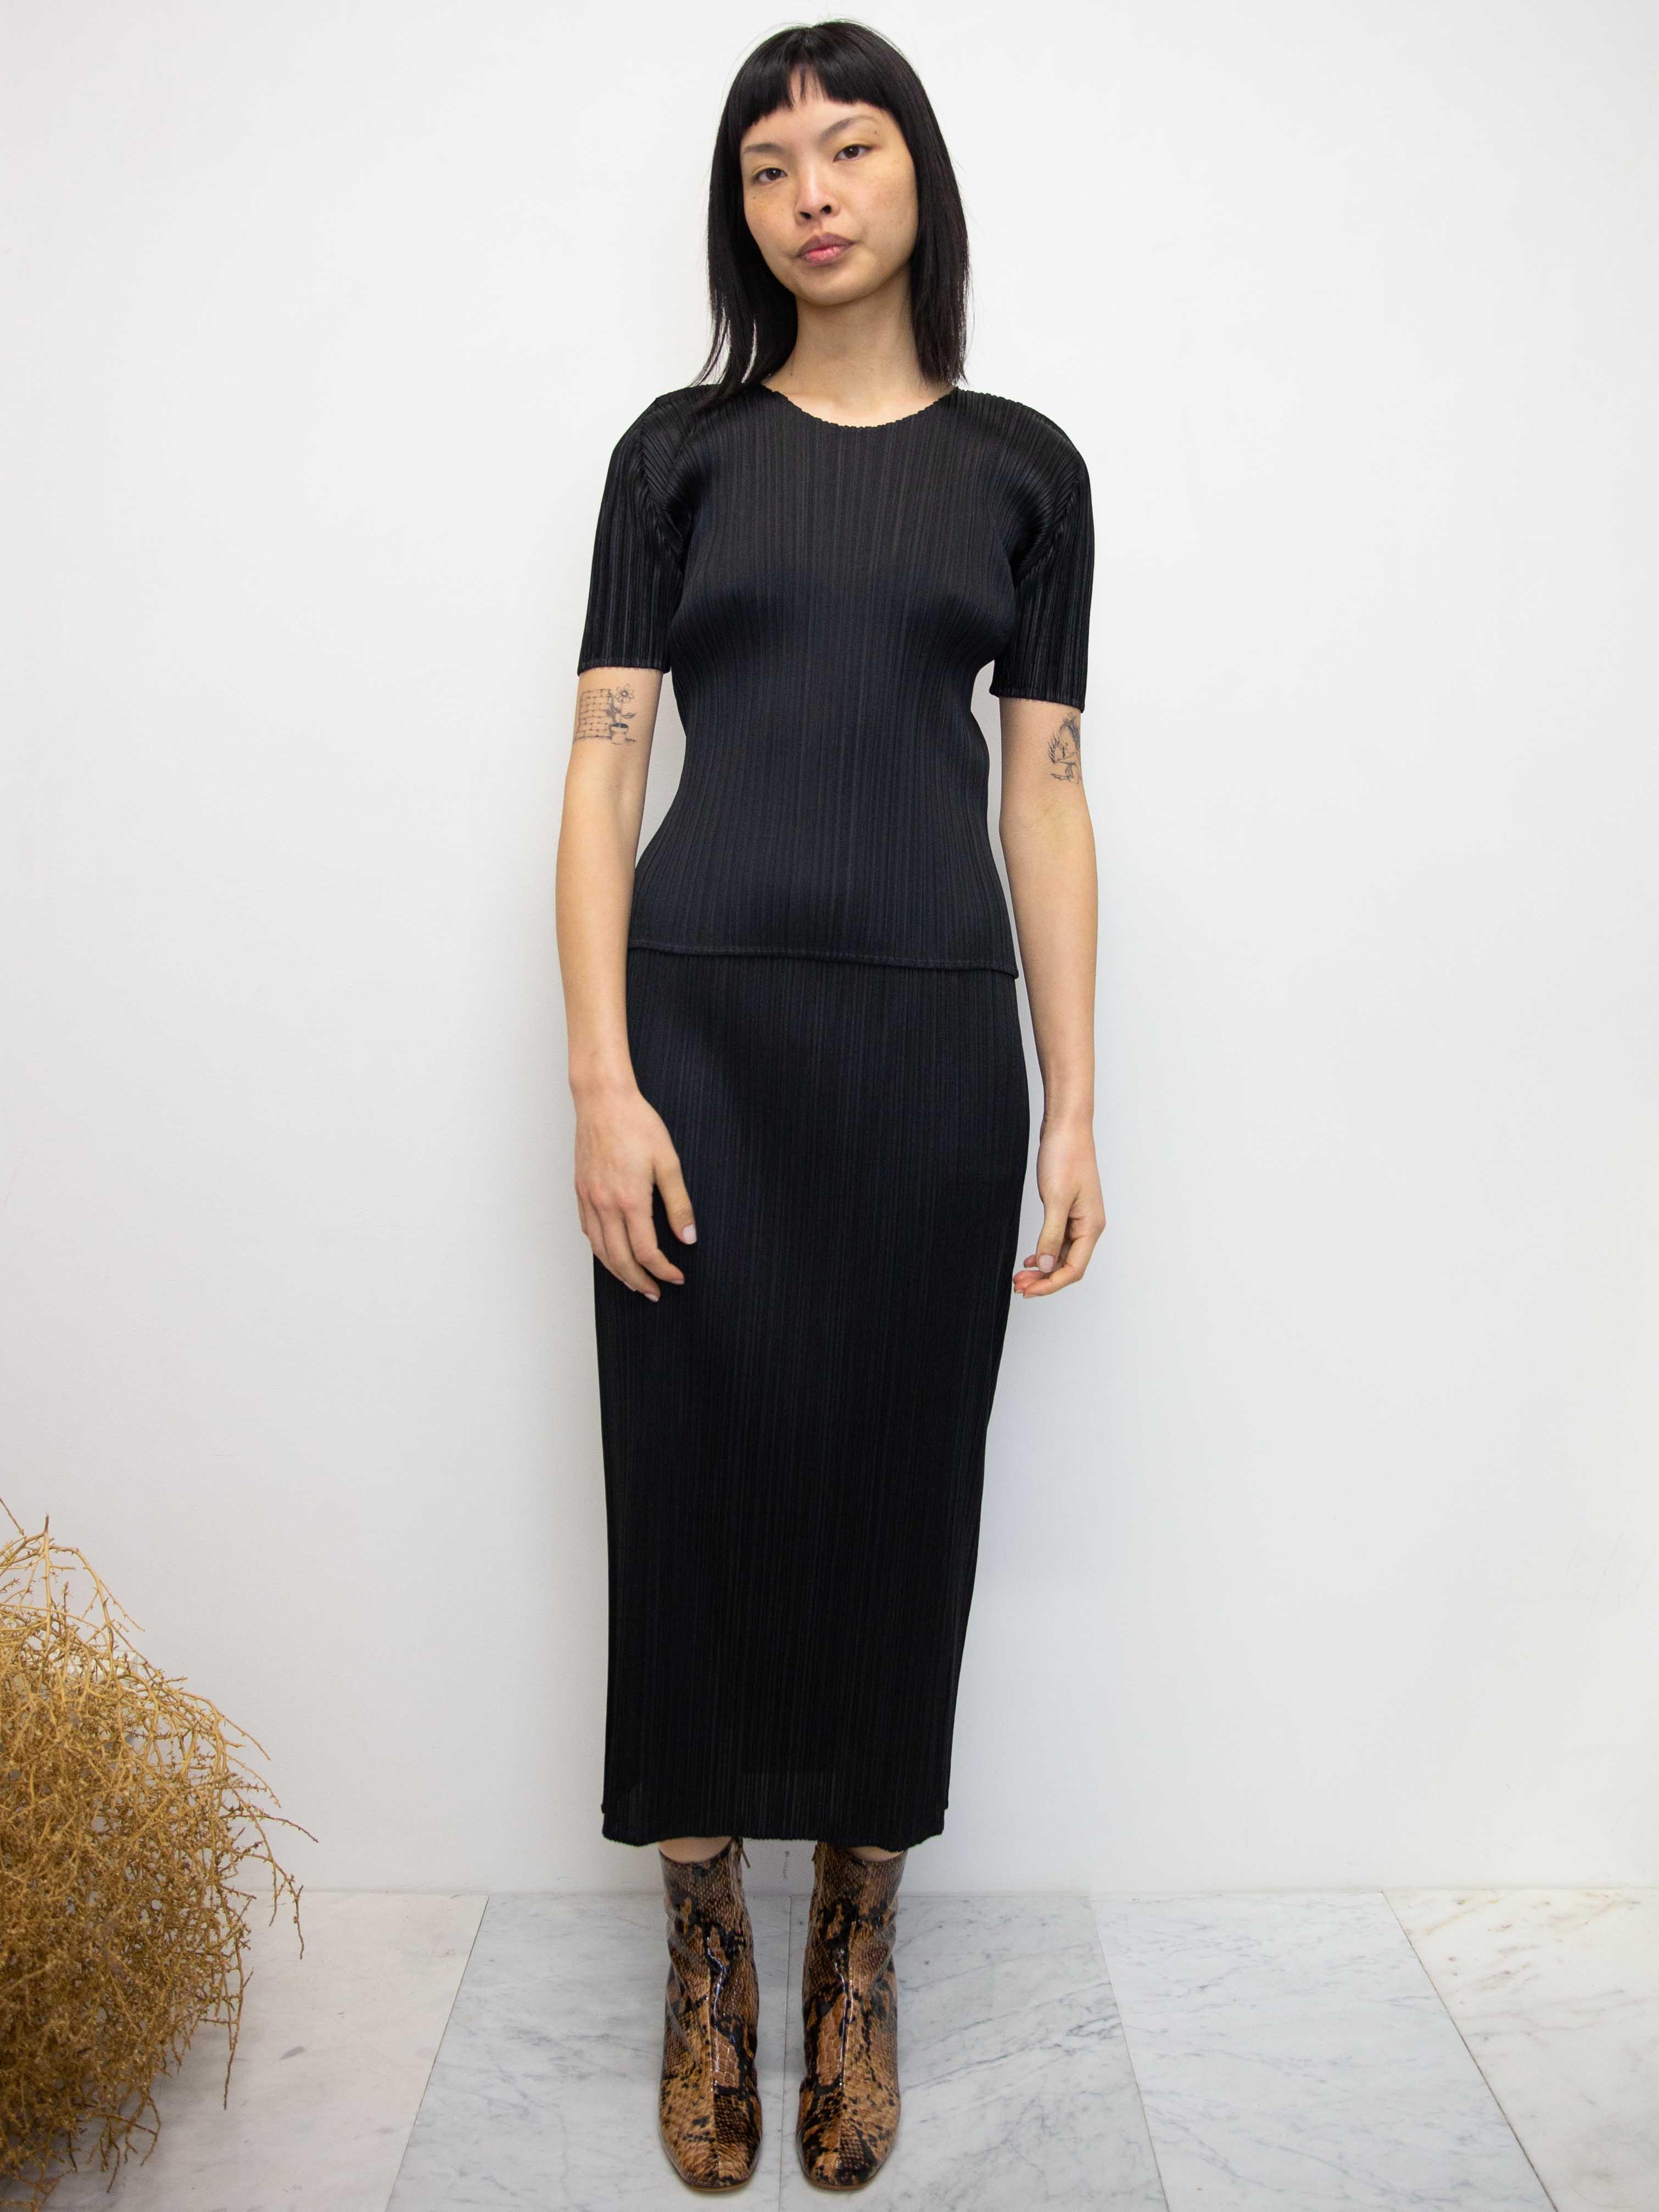 PLEATS PLEASE ISSEY MIYAKE Basics Skirt - Black